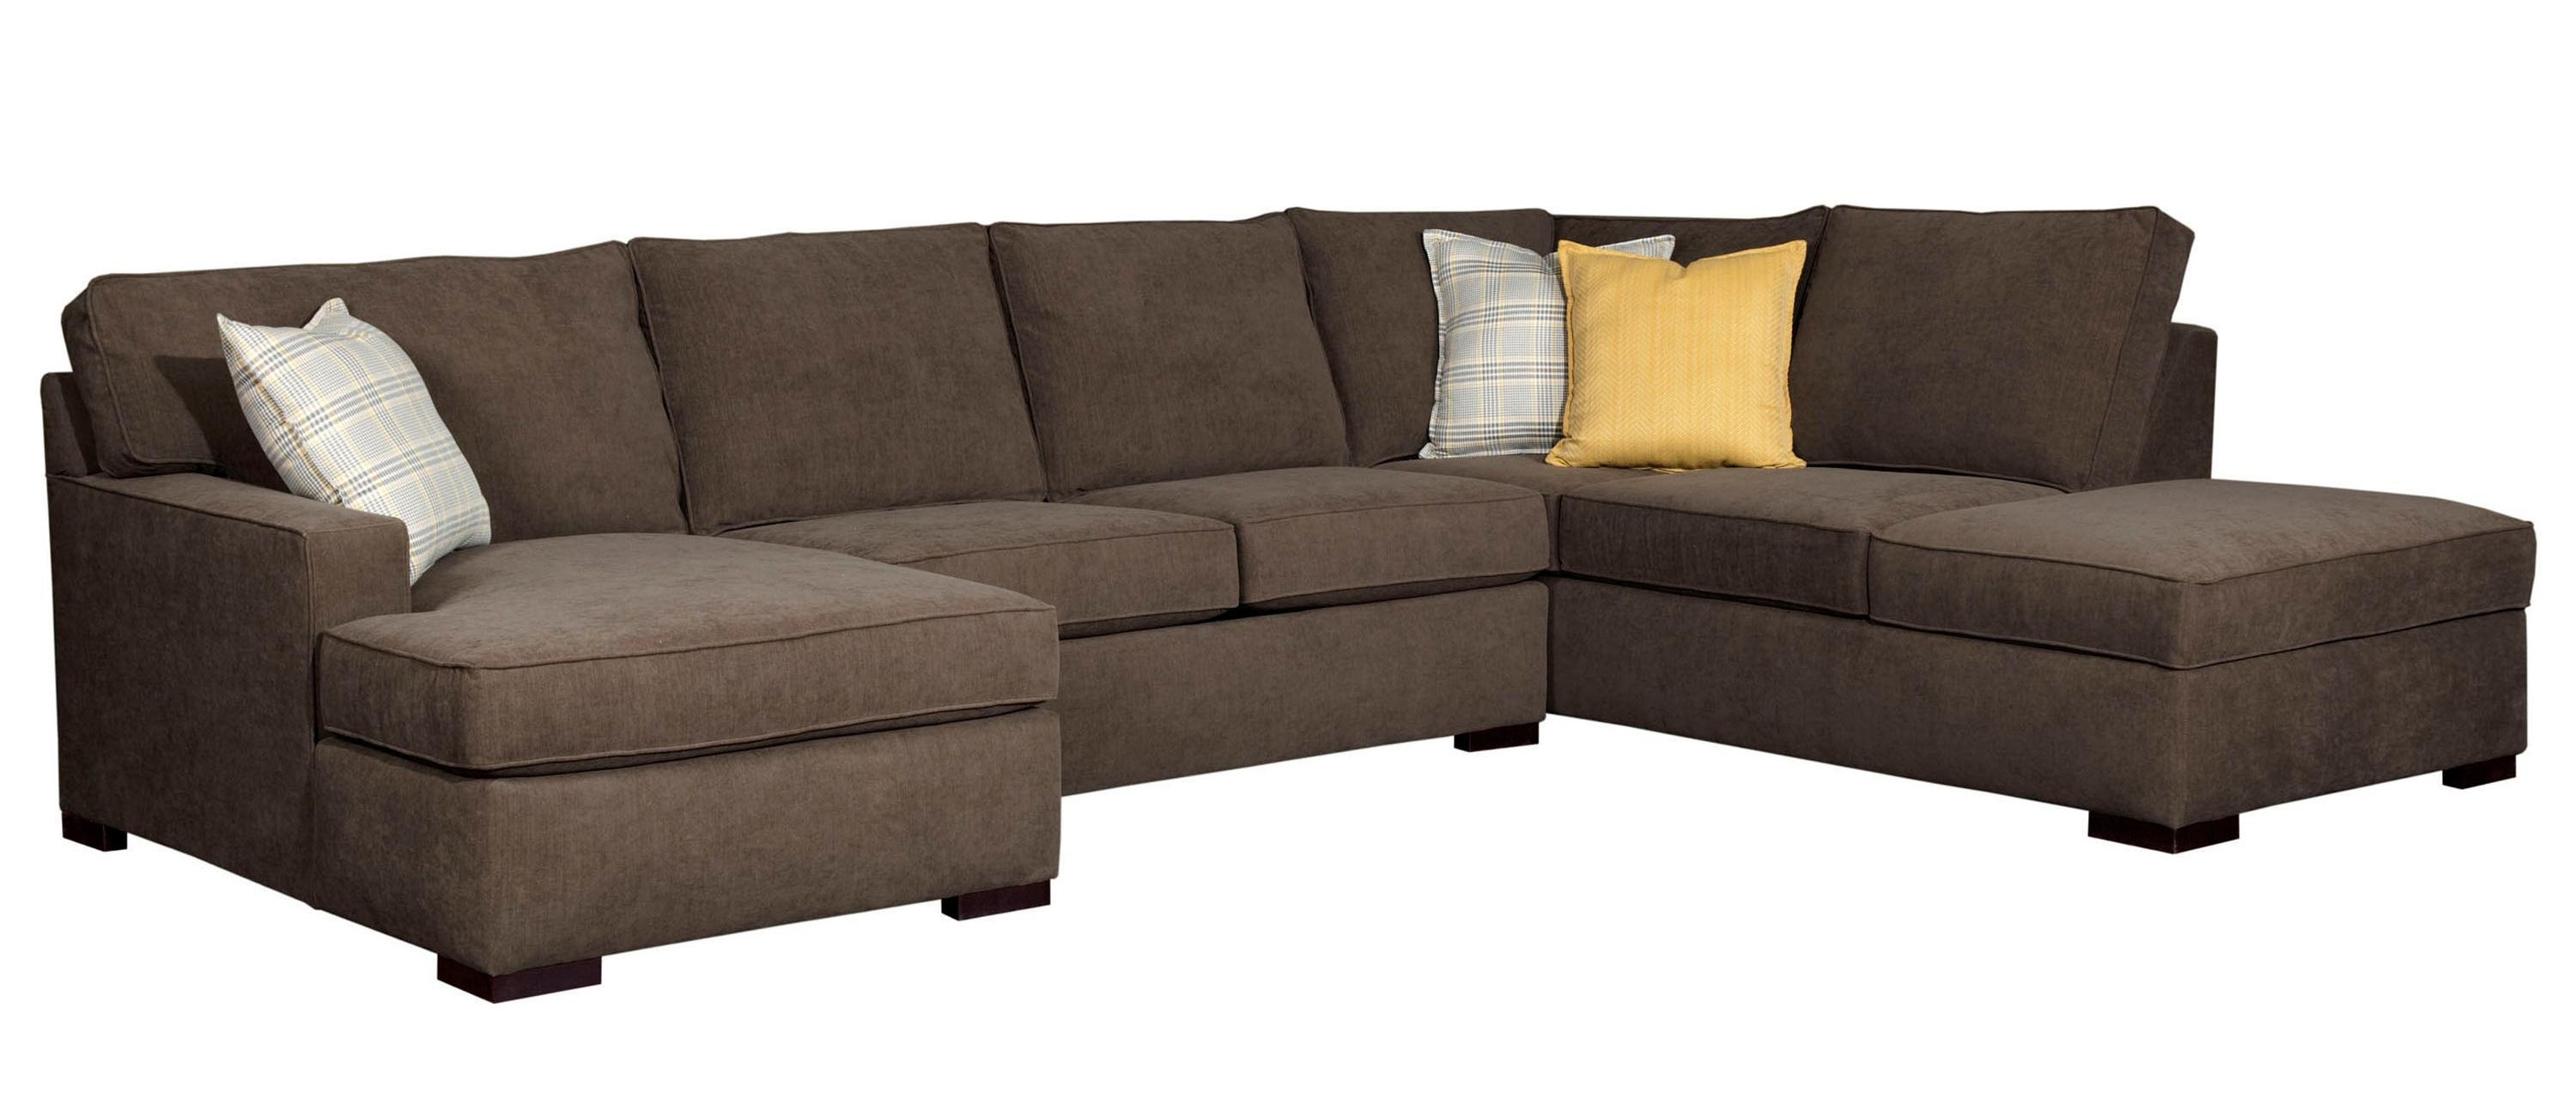 Broyhill Furniture Raphael Contemporary Sectional Sofa With Laf In Broyhill Sectional Sofas (Image 4 of 15)